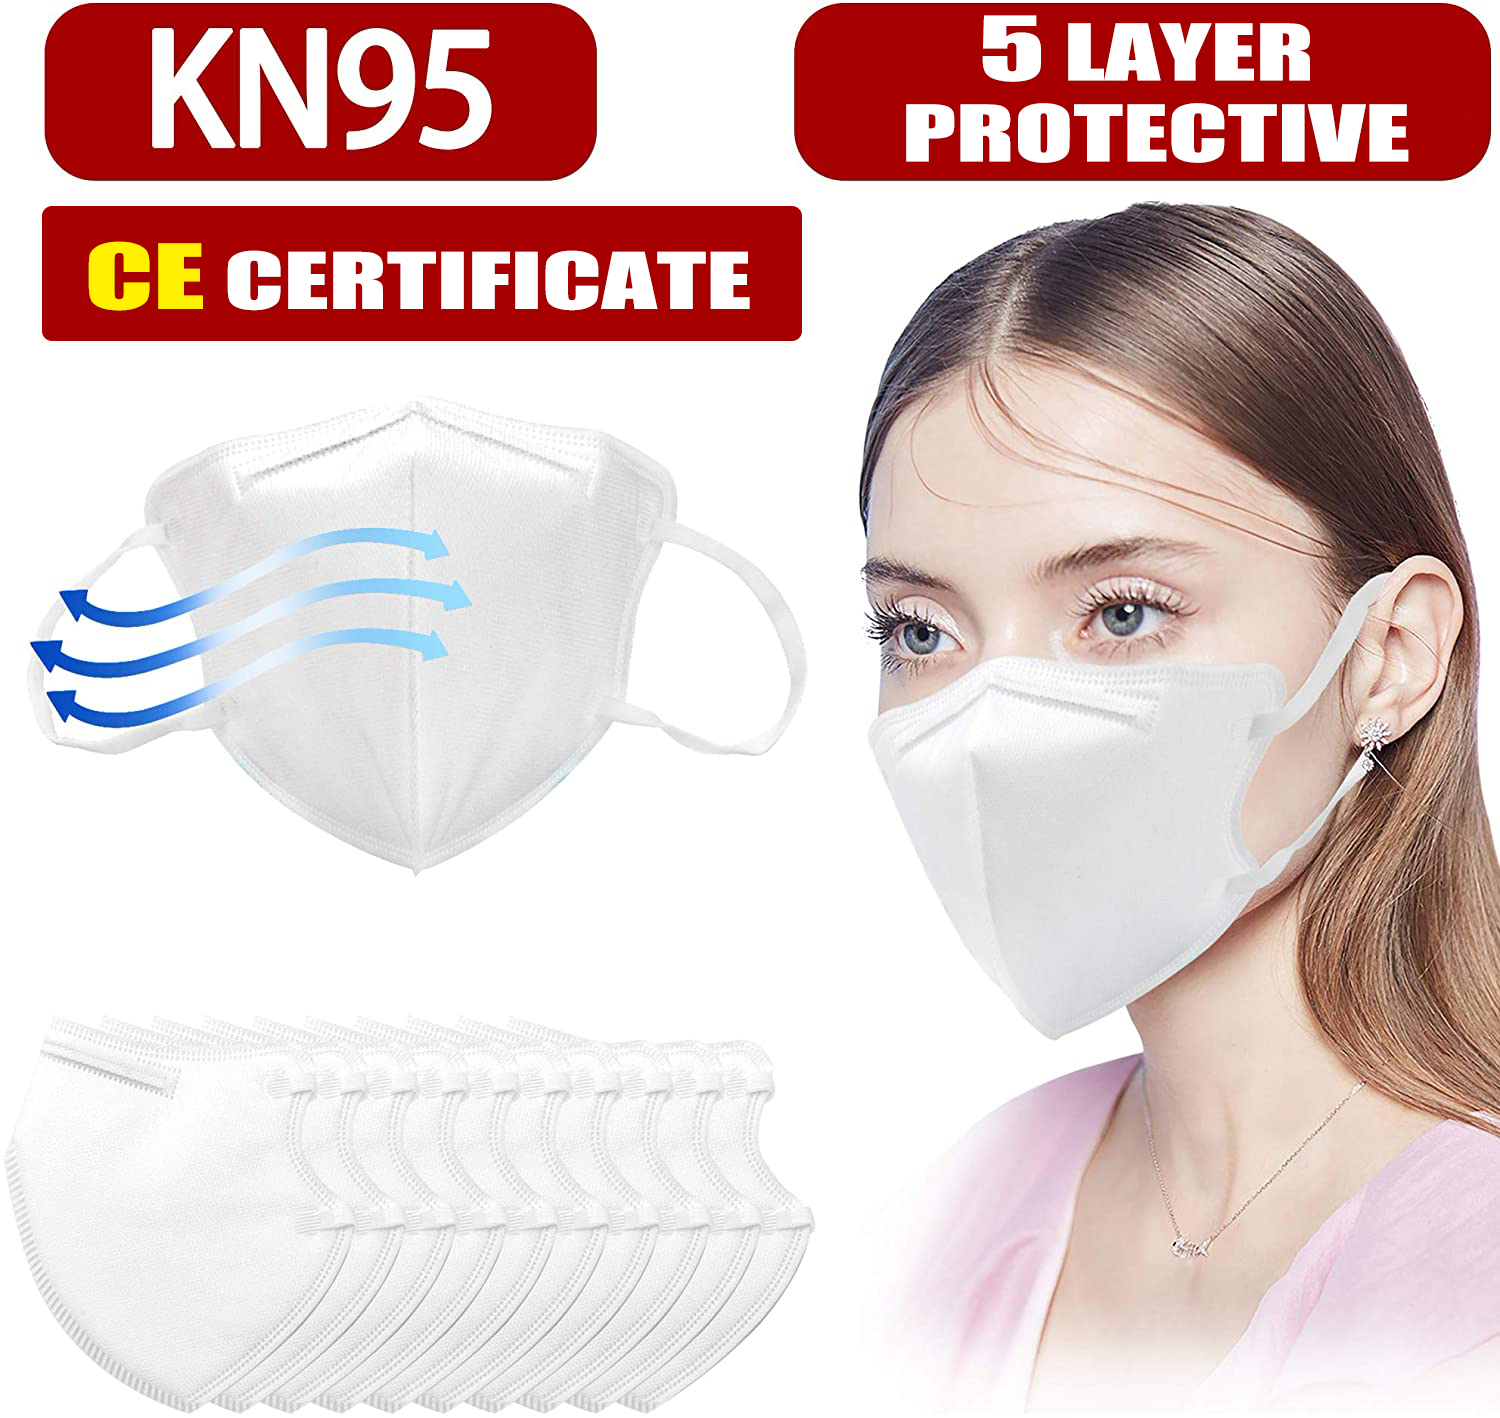 5-500pcs KN95 CE Certification Face Mask N95 FFP3 Mouth Mask Anti Smog Strong Protective Than FFP2 KF94 Másk For Germ Protective